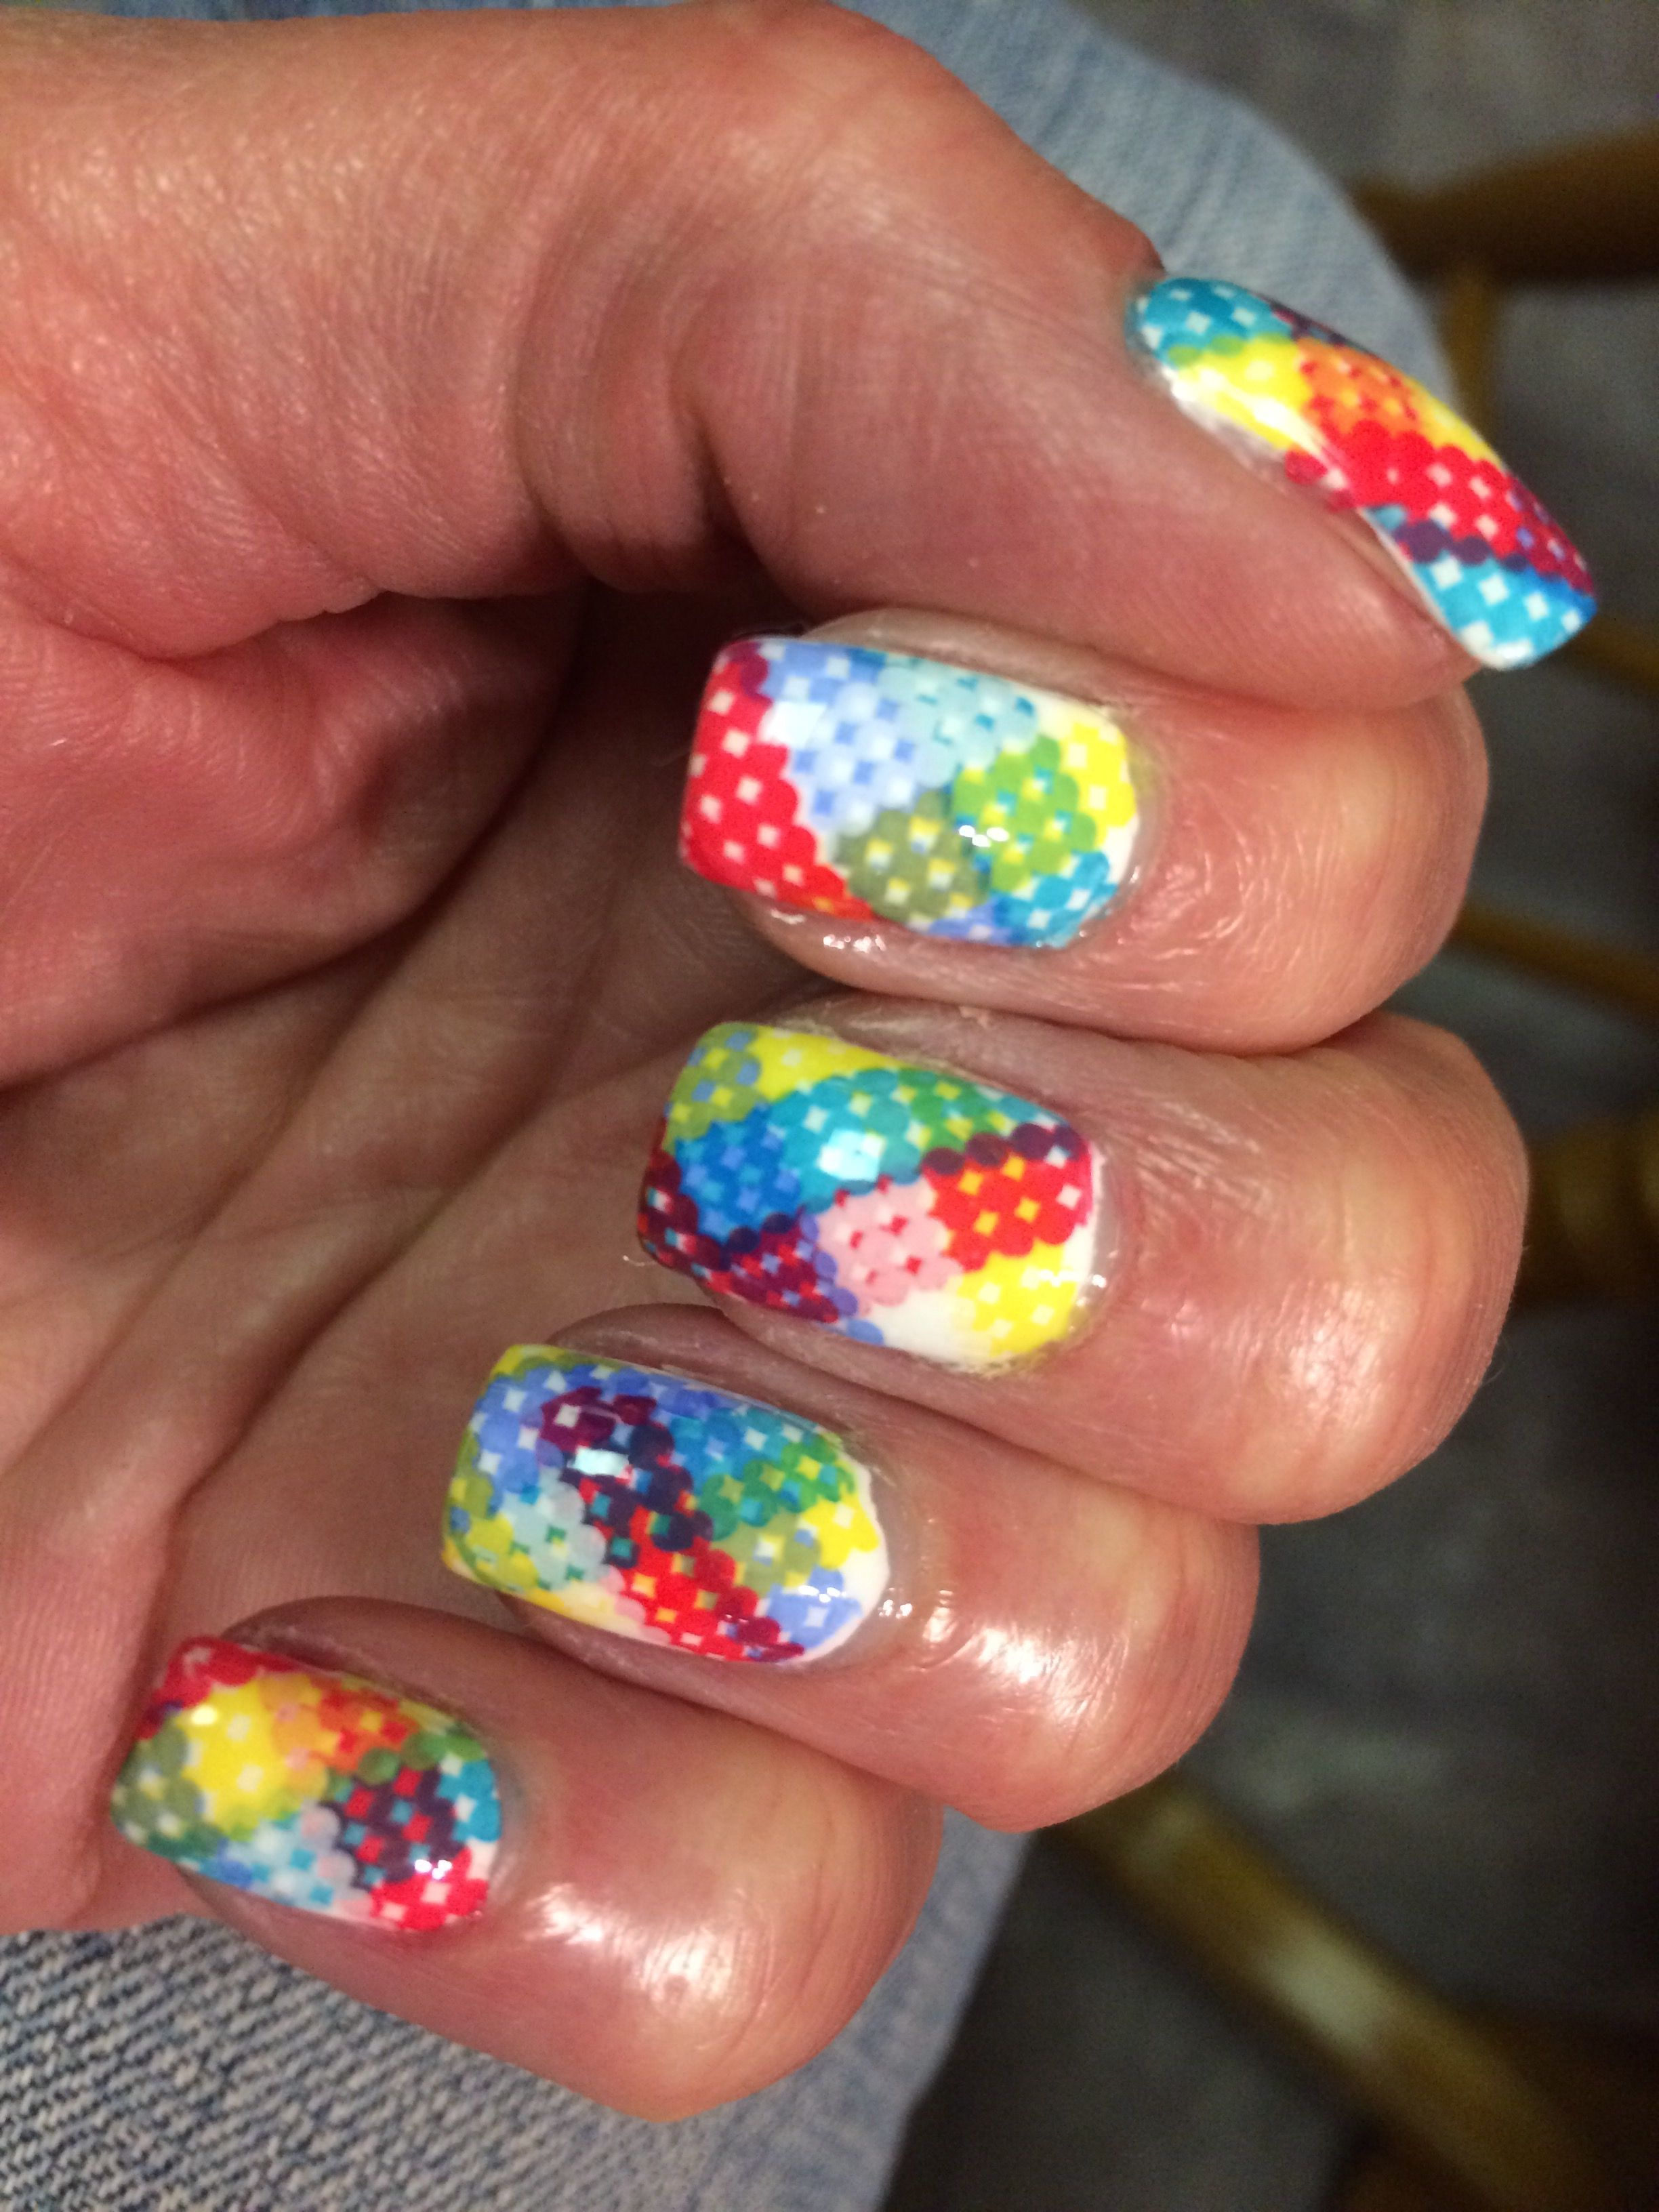 Pin By Shelly Cadmus On My Nail Art Pinterest